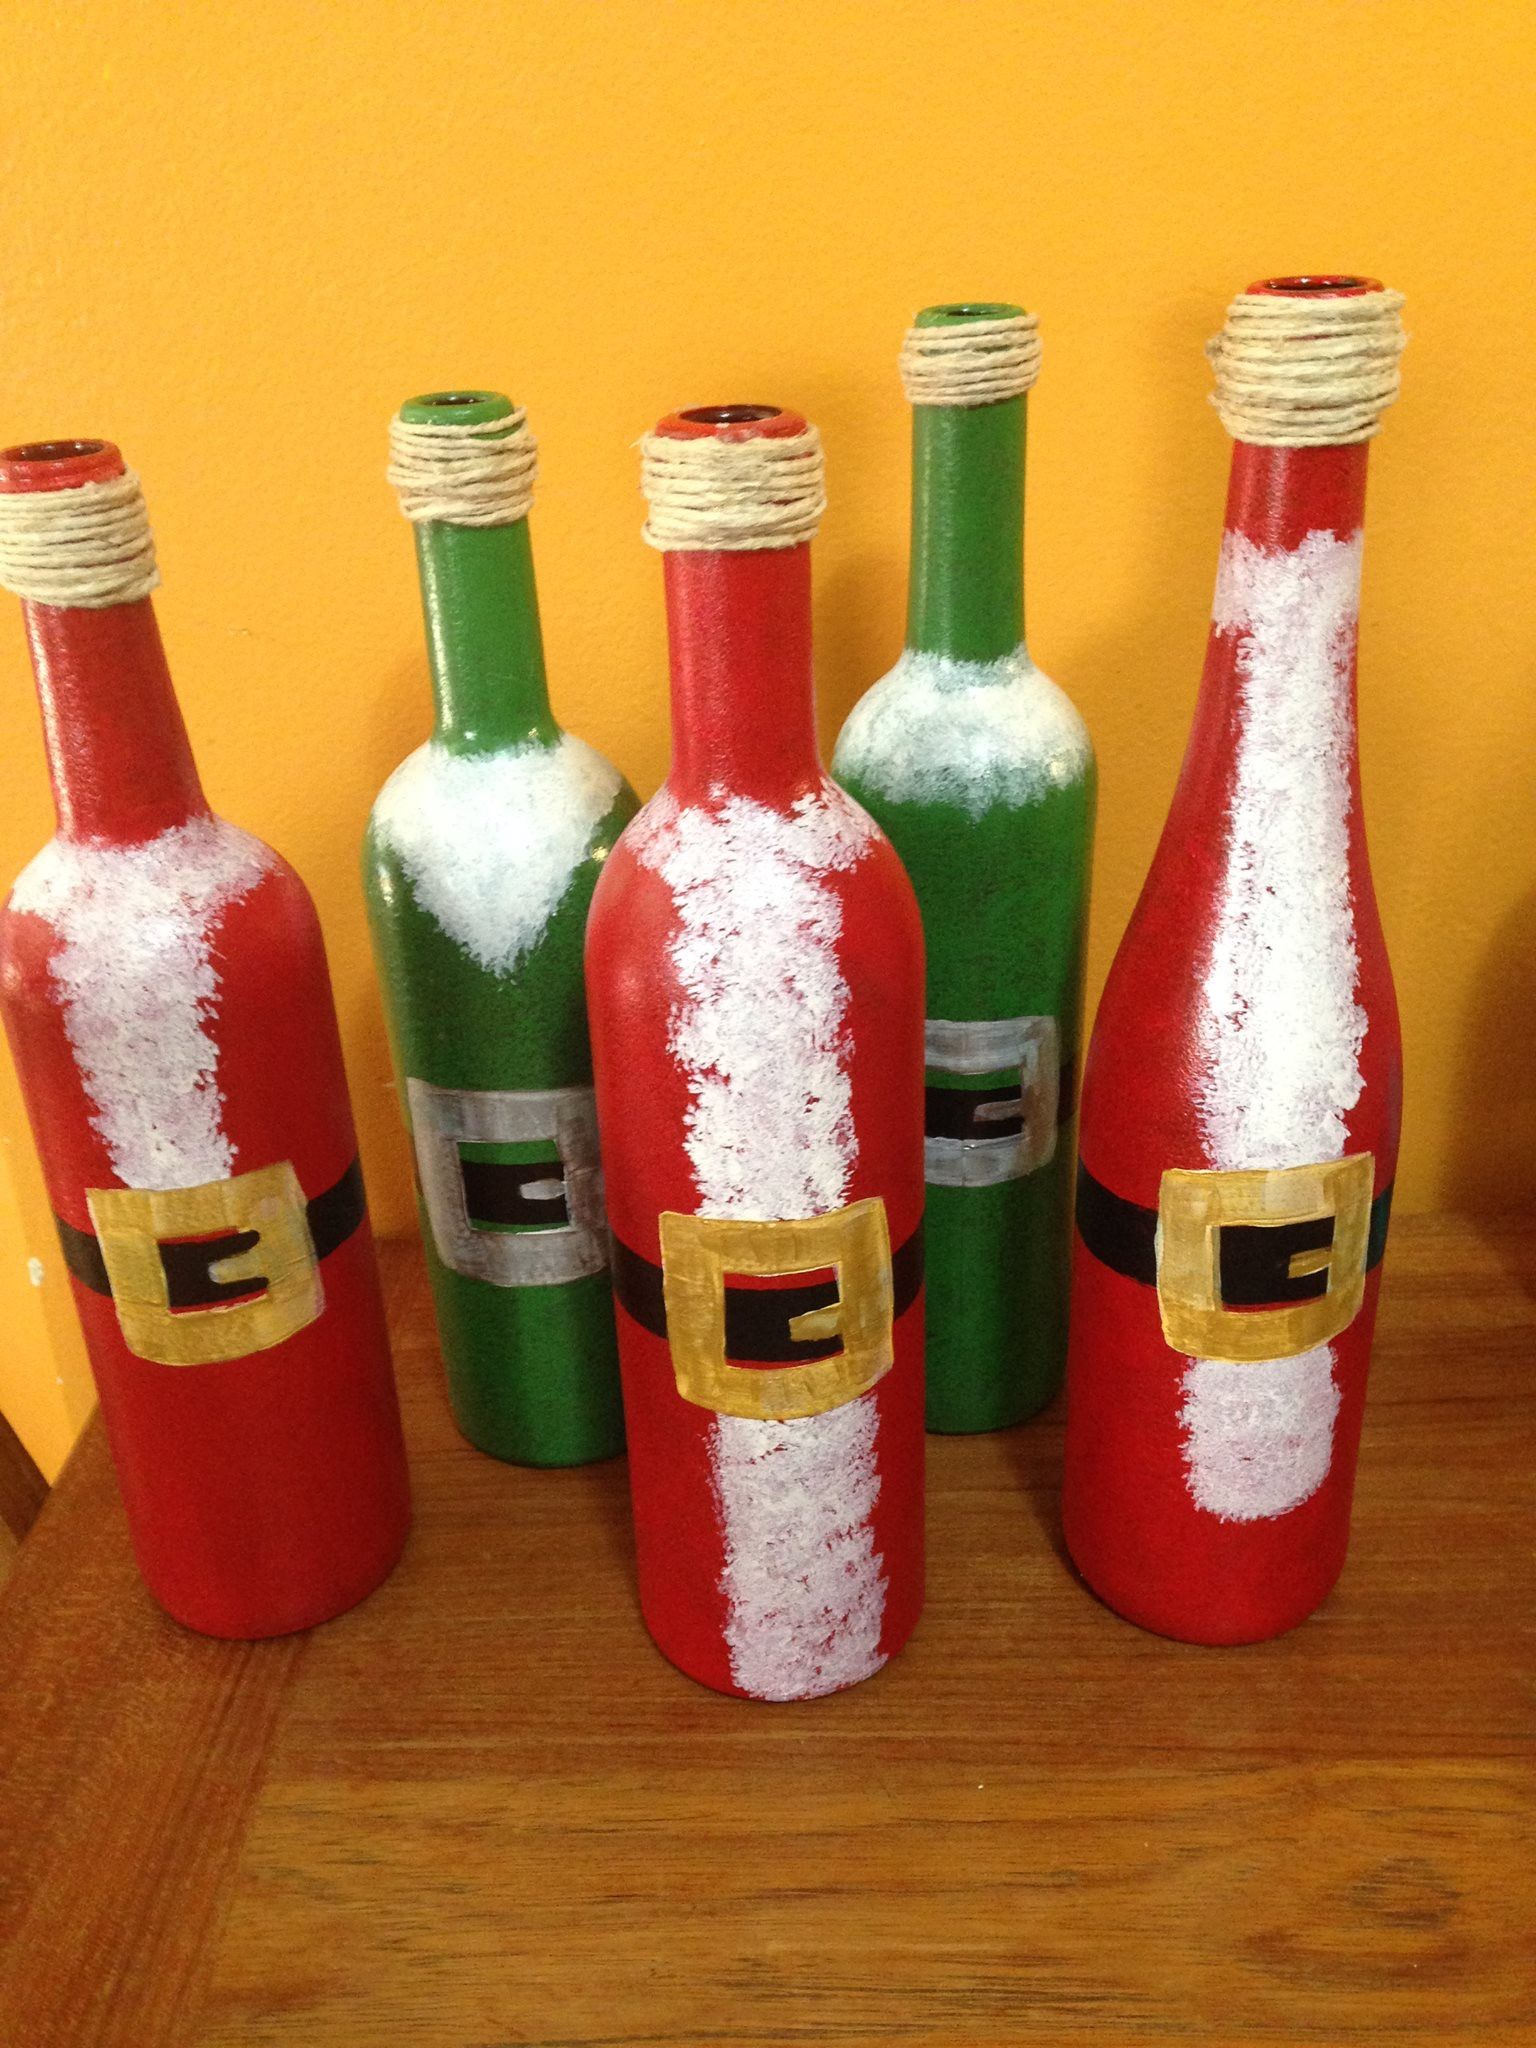 Christmas Santa And Elf Hand Painted Glass Wine Bottles By Debbie Tabora 2016 Wine Bottle Crafts Bottle Crafts Wine Bottle Diy Crafts